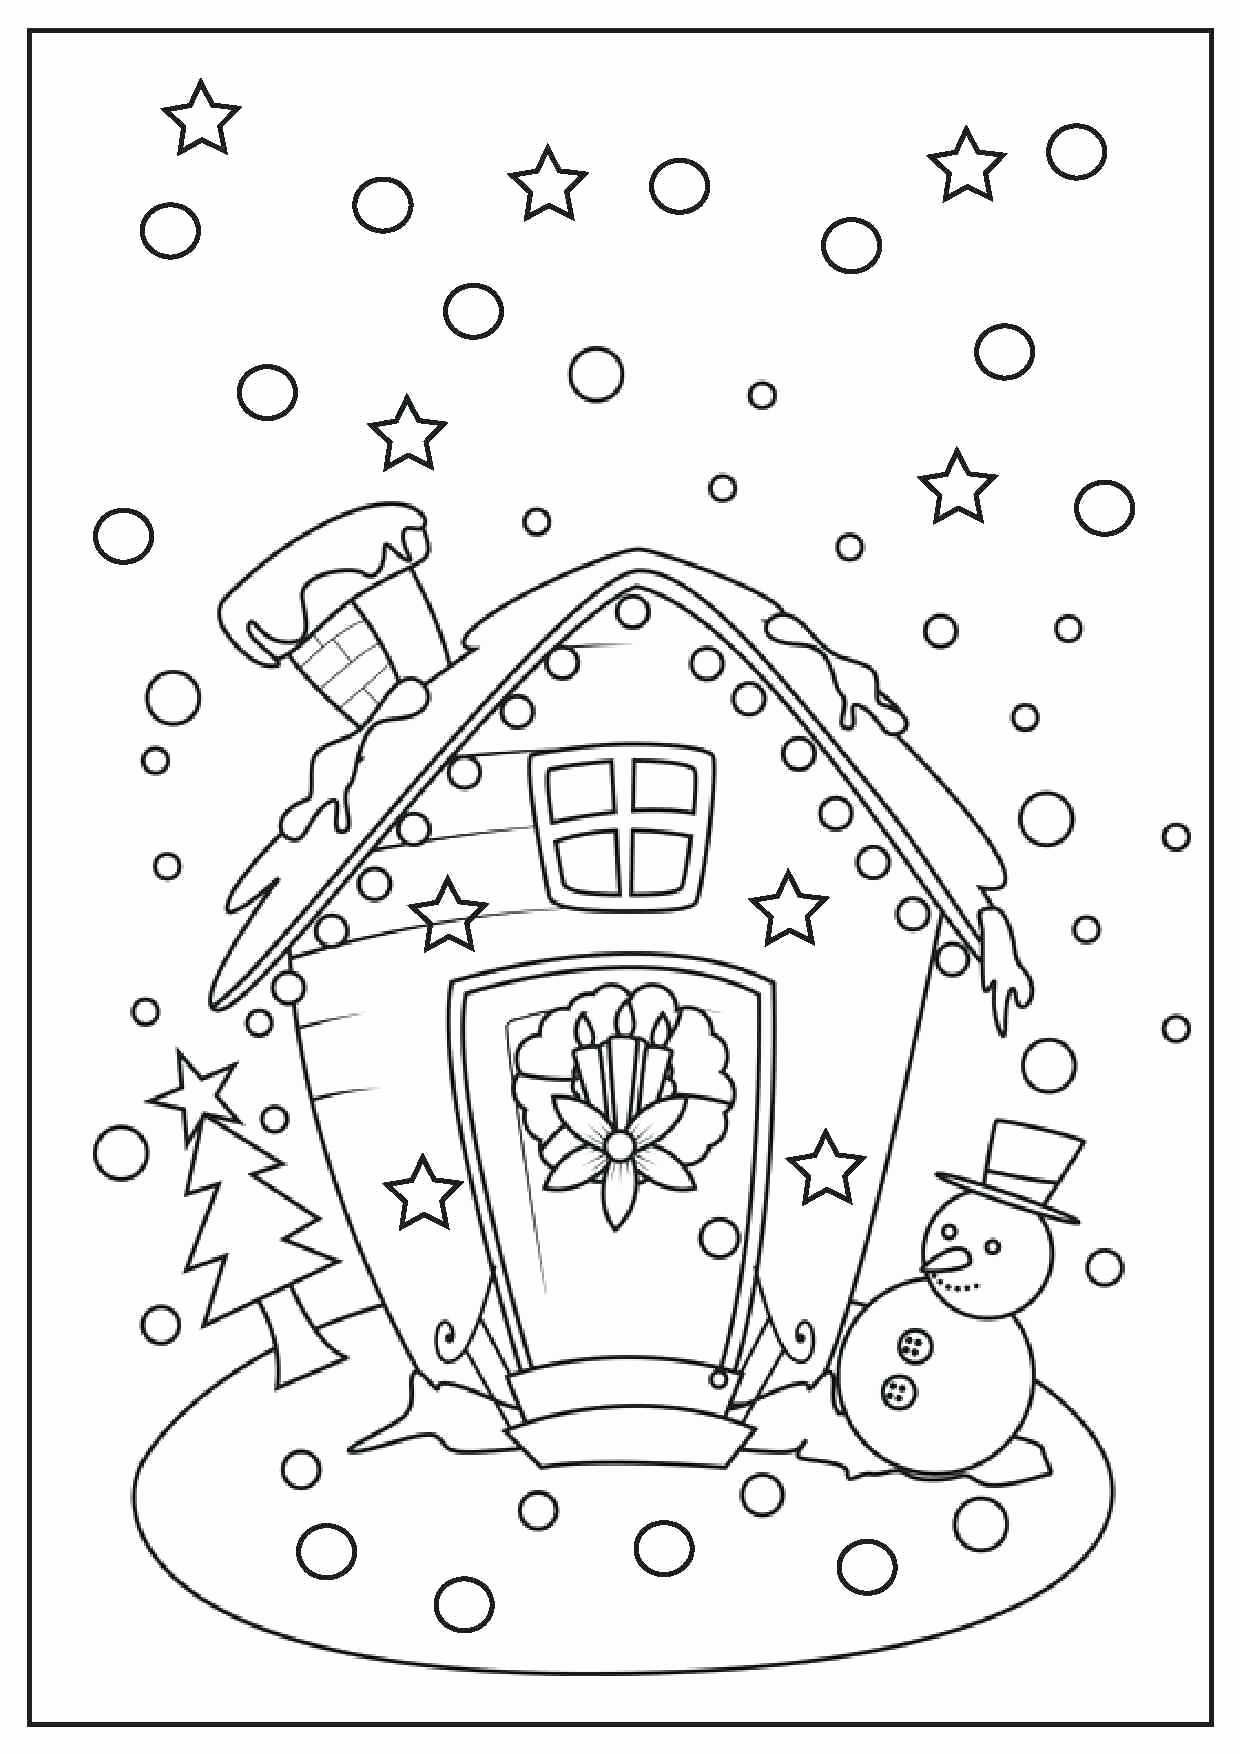 coloring pages that you can color on the computer Collection-coloring pages you can color on the puter for adults Color Coloring Pages 0d Coloring 4-l